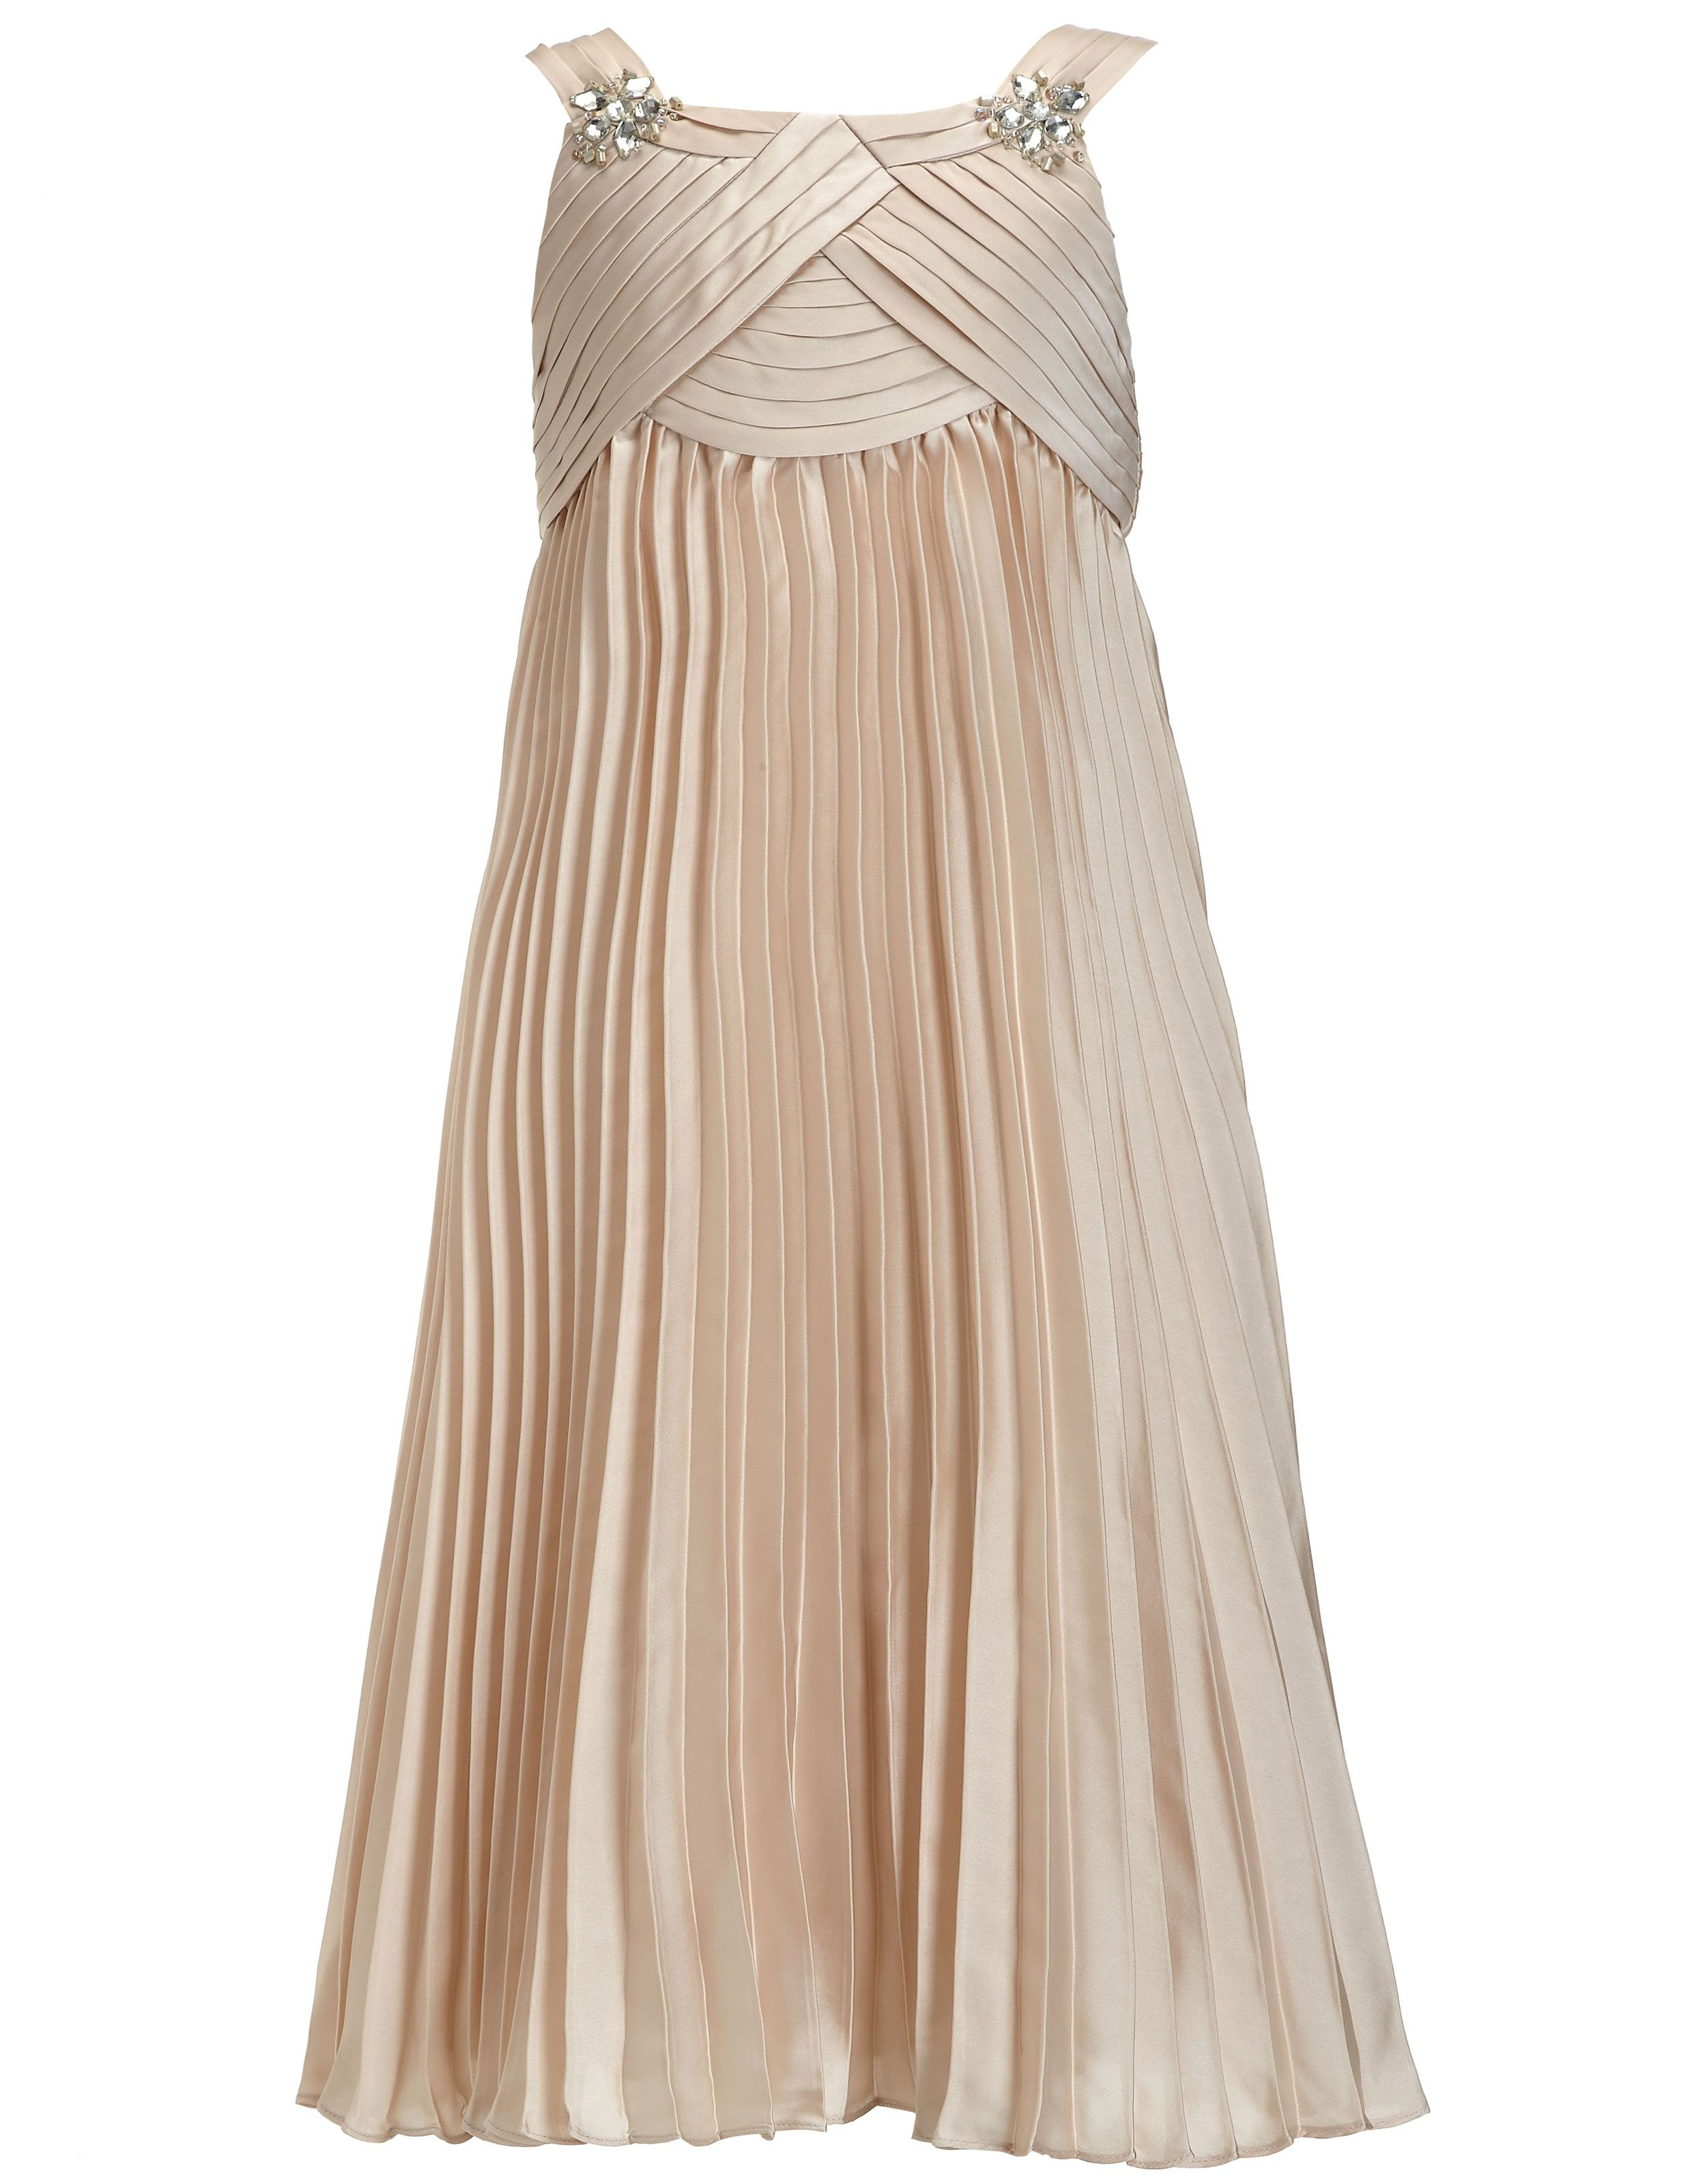 Monsoon girl dress for junior bridesmaids but in cream or white